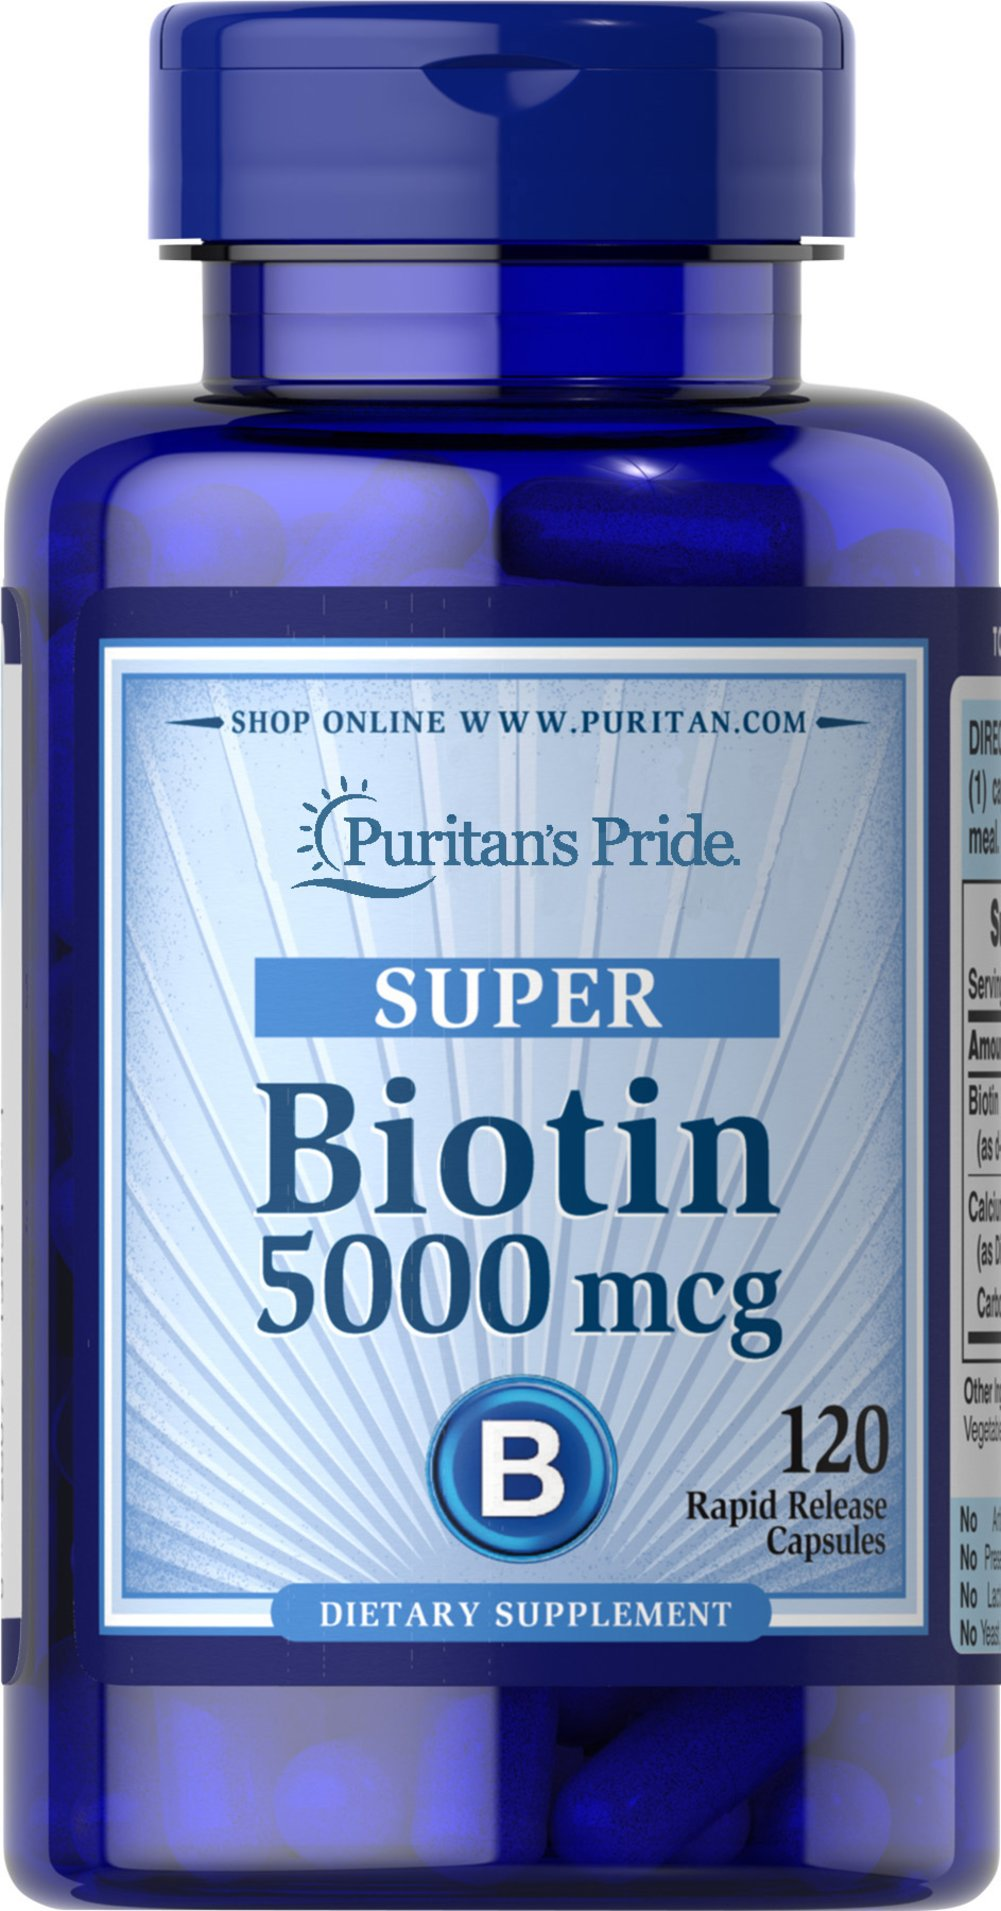 Biotin 5000 mcg Thumbnail Alternate Bottle View